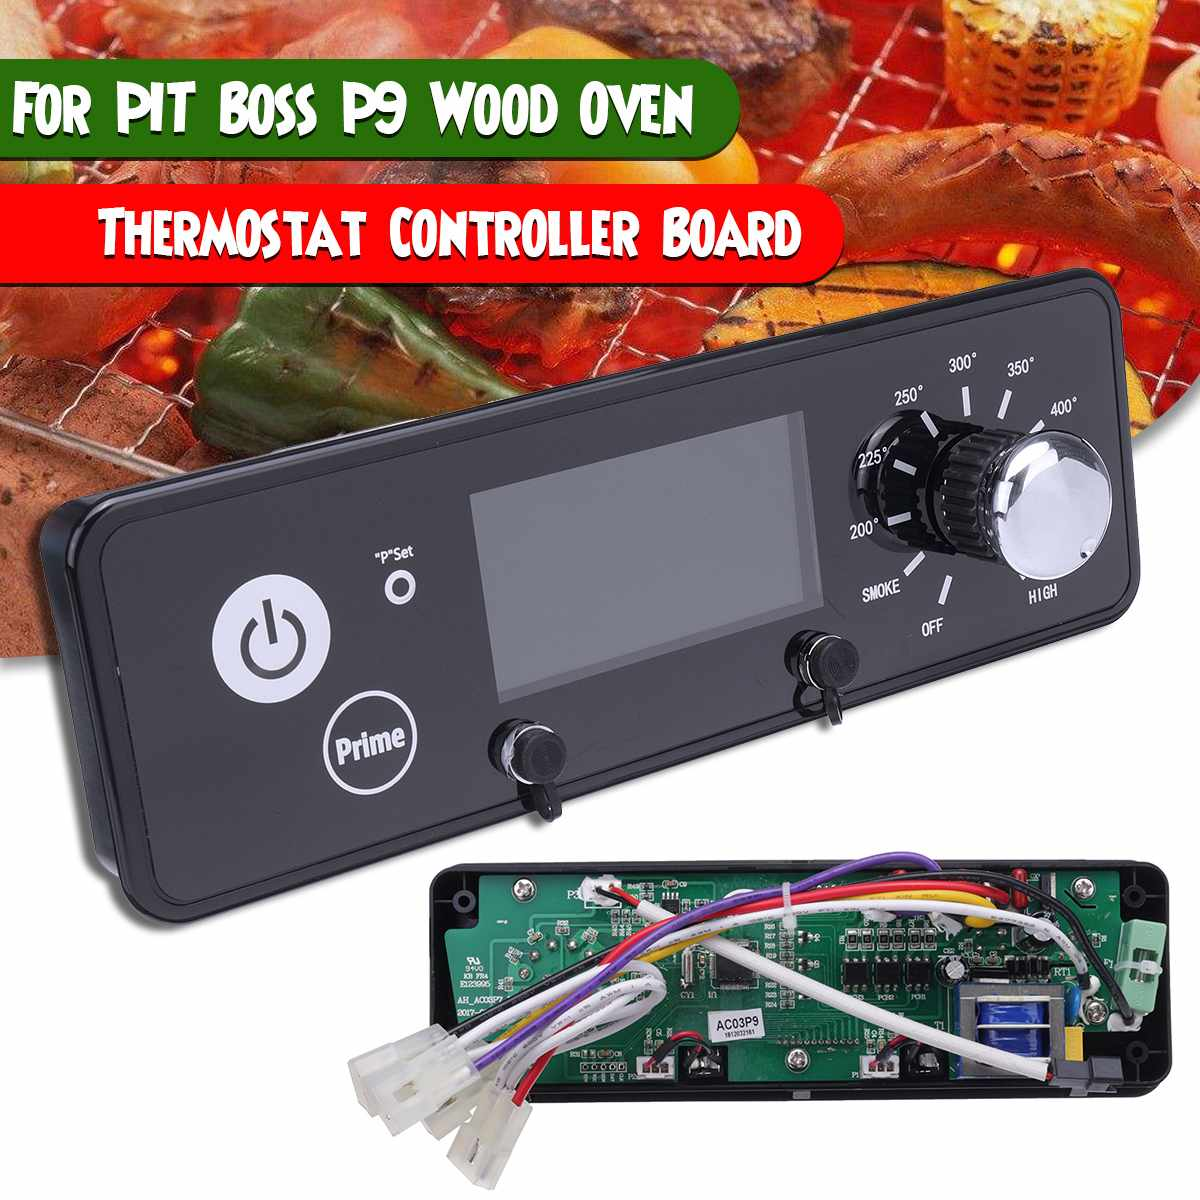 120V Digital Thermostat Controller Board Oven Temperature Control with Temperature Sensor /& Dual Meat Probes Interface Replacement Parts for Pit Boss Wood Oven Black